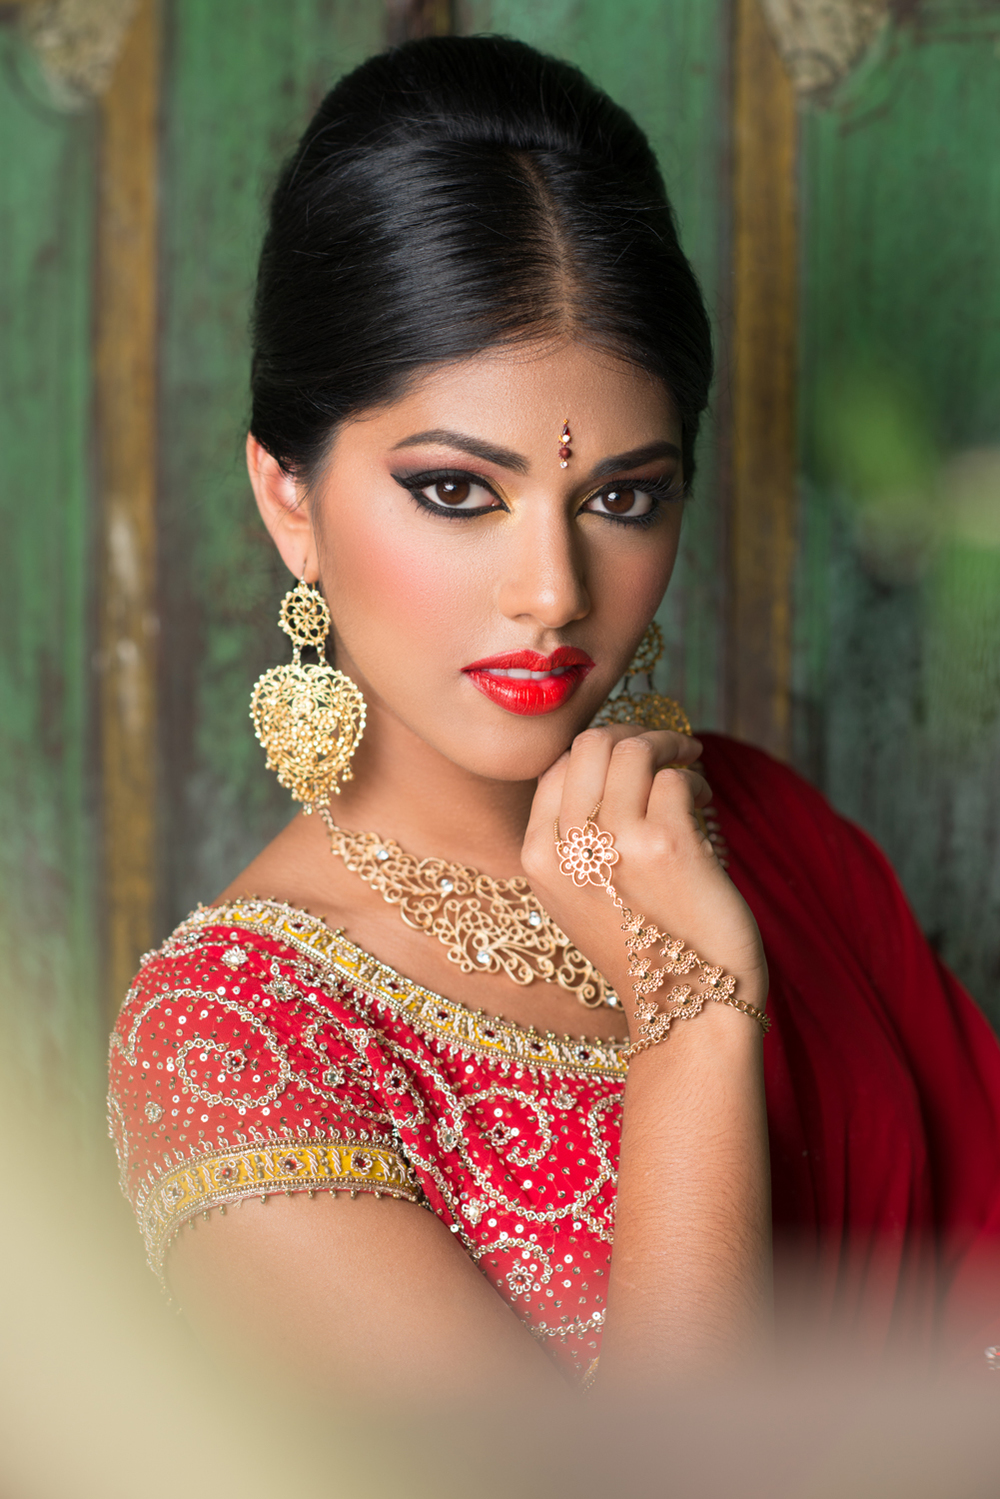 Bridal Fashion Photograhy 029.jpg